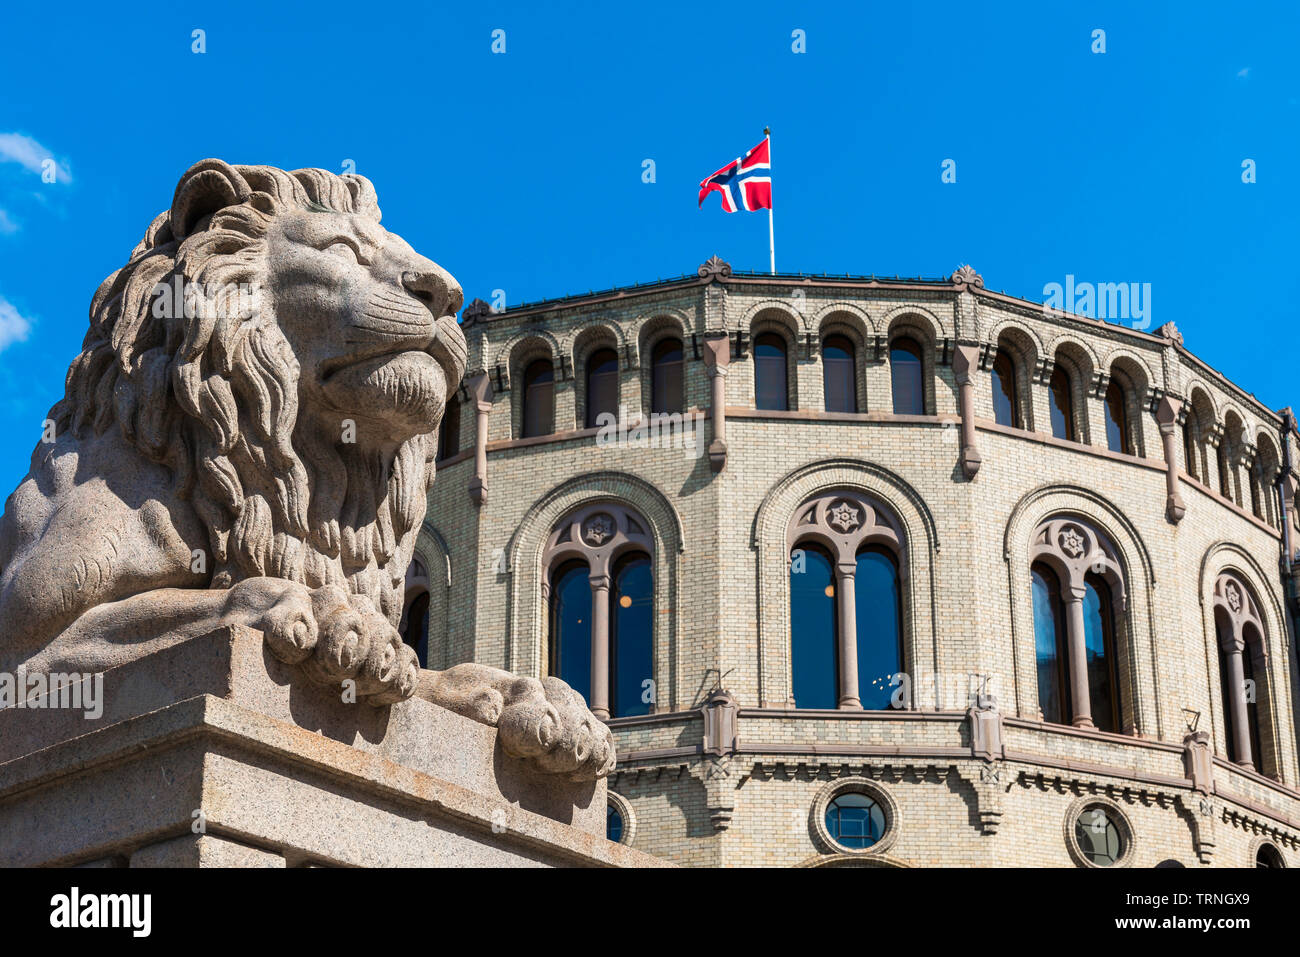 Parliament Oslo, view of a lion statue sited in front of the Norwegian Parliament building in Oslo. Stock Photo